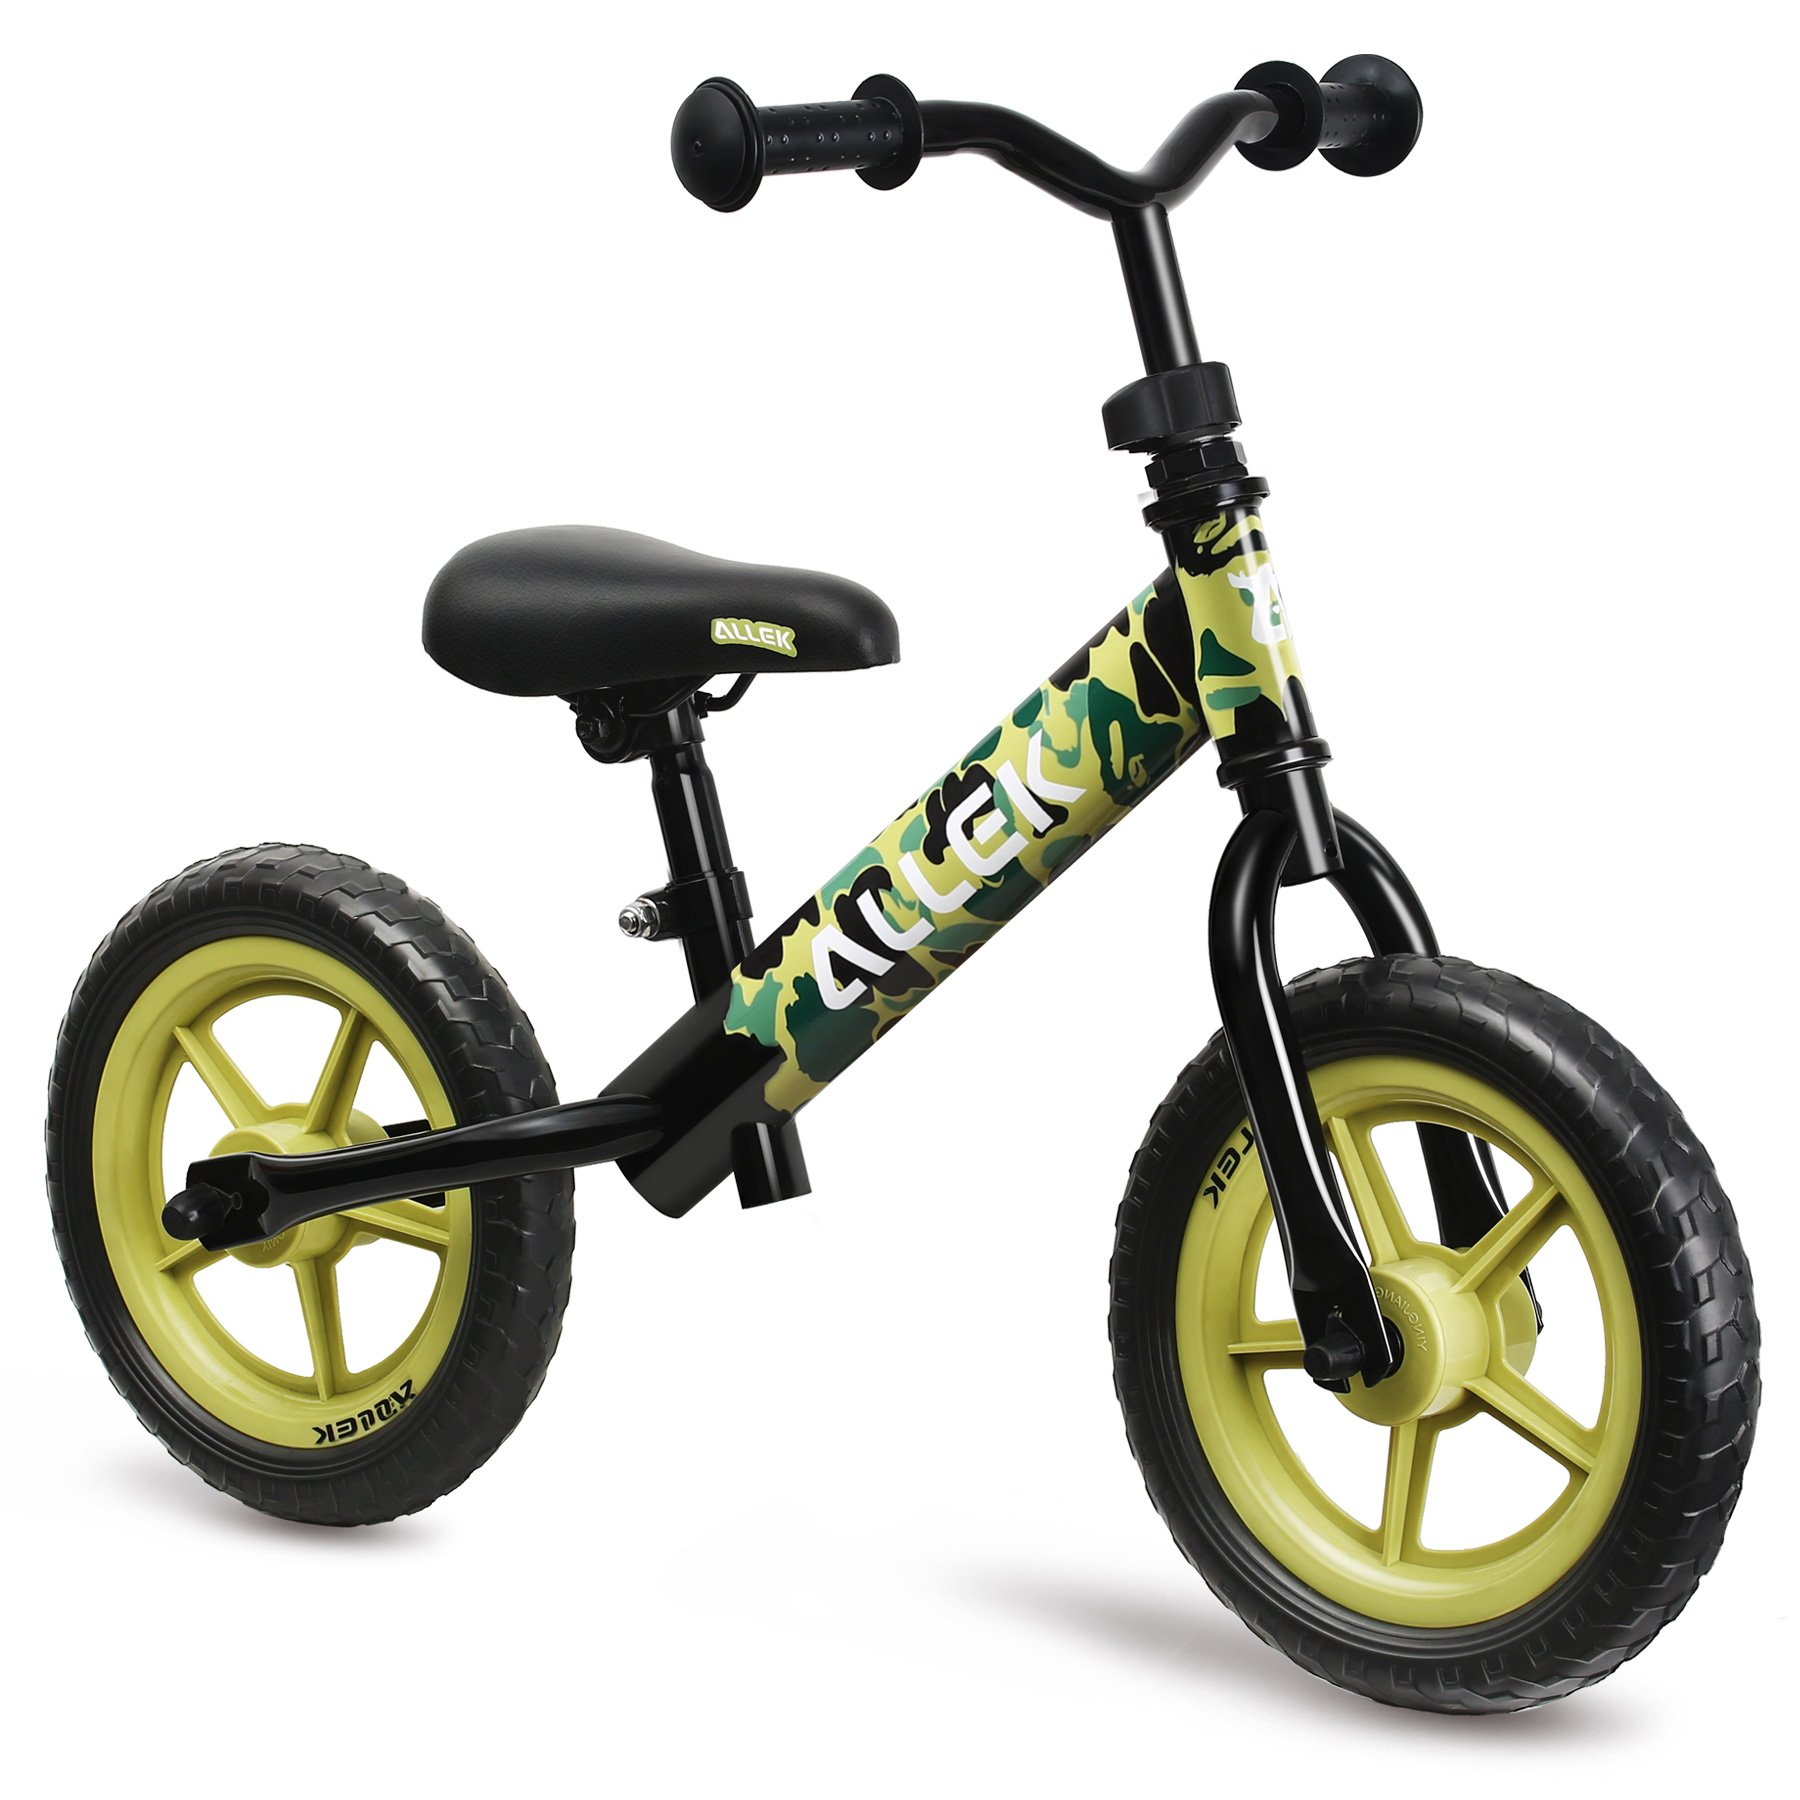 Allek Balance Bike for Kids & Toddlers, 12'' No-Pedal Balance Bike for Kids Boys Girls- Perfect for Balance Training Your 18 Month to 6 years Old Child (Camouflage)